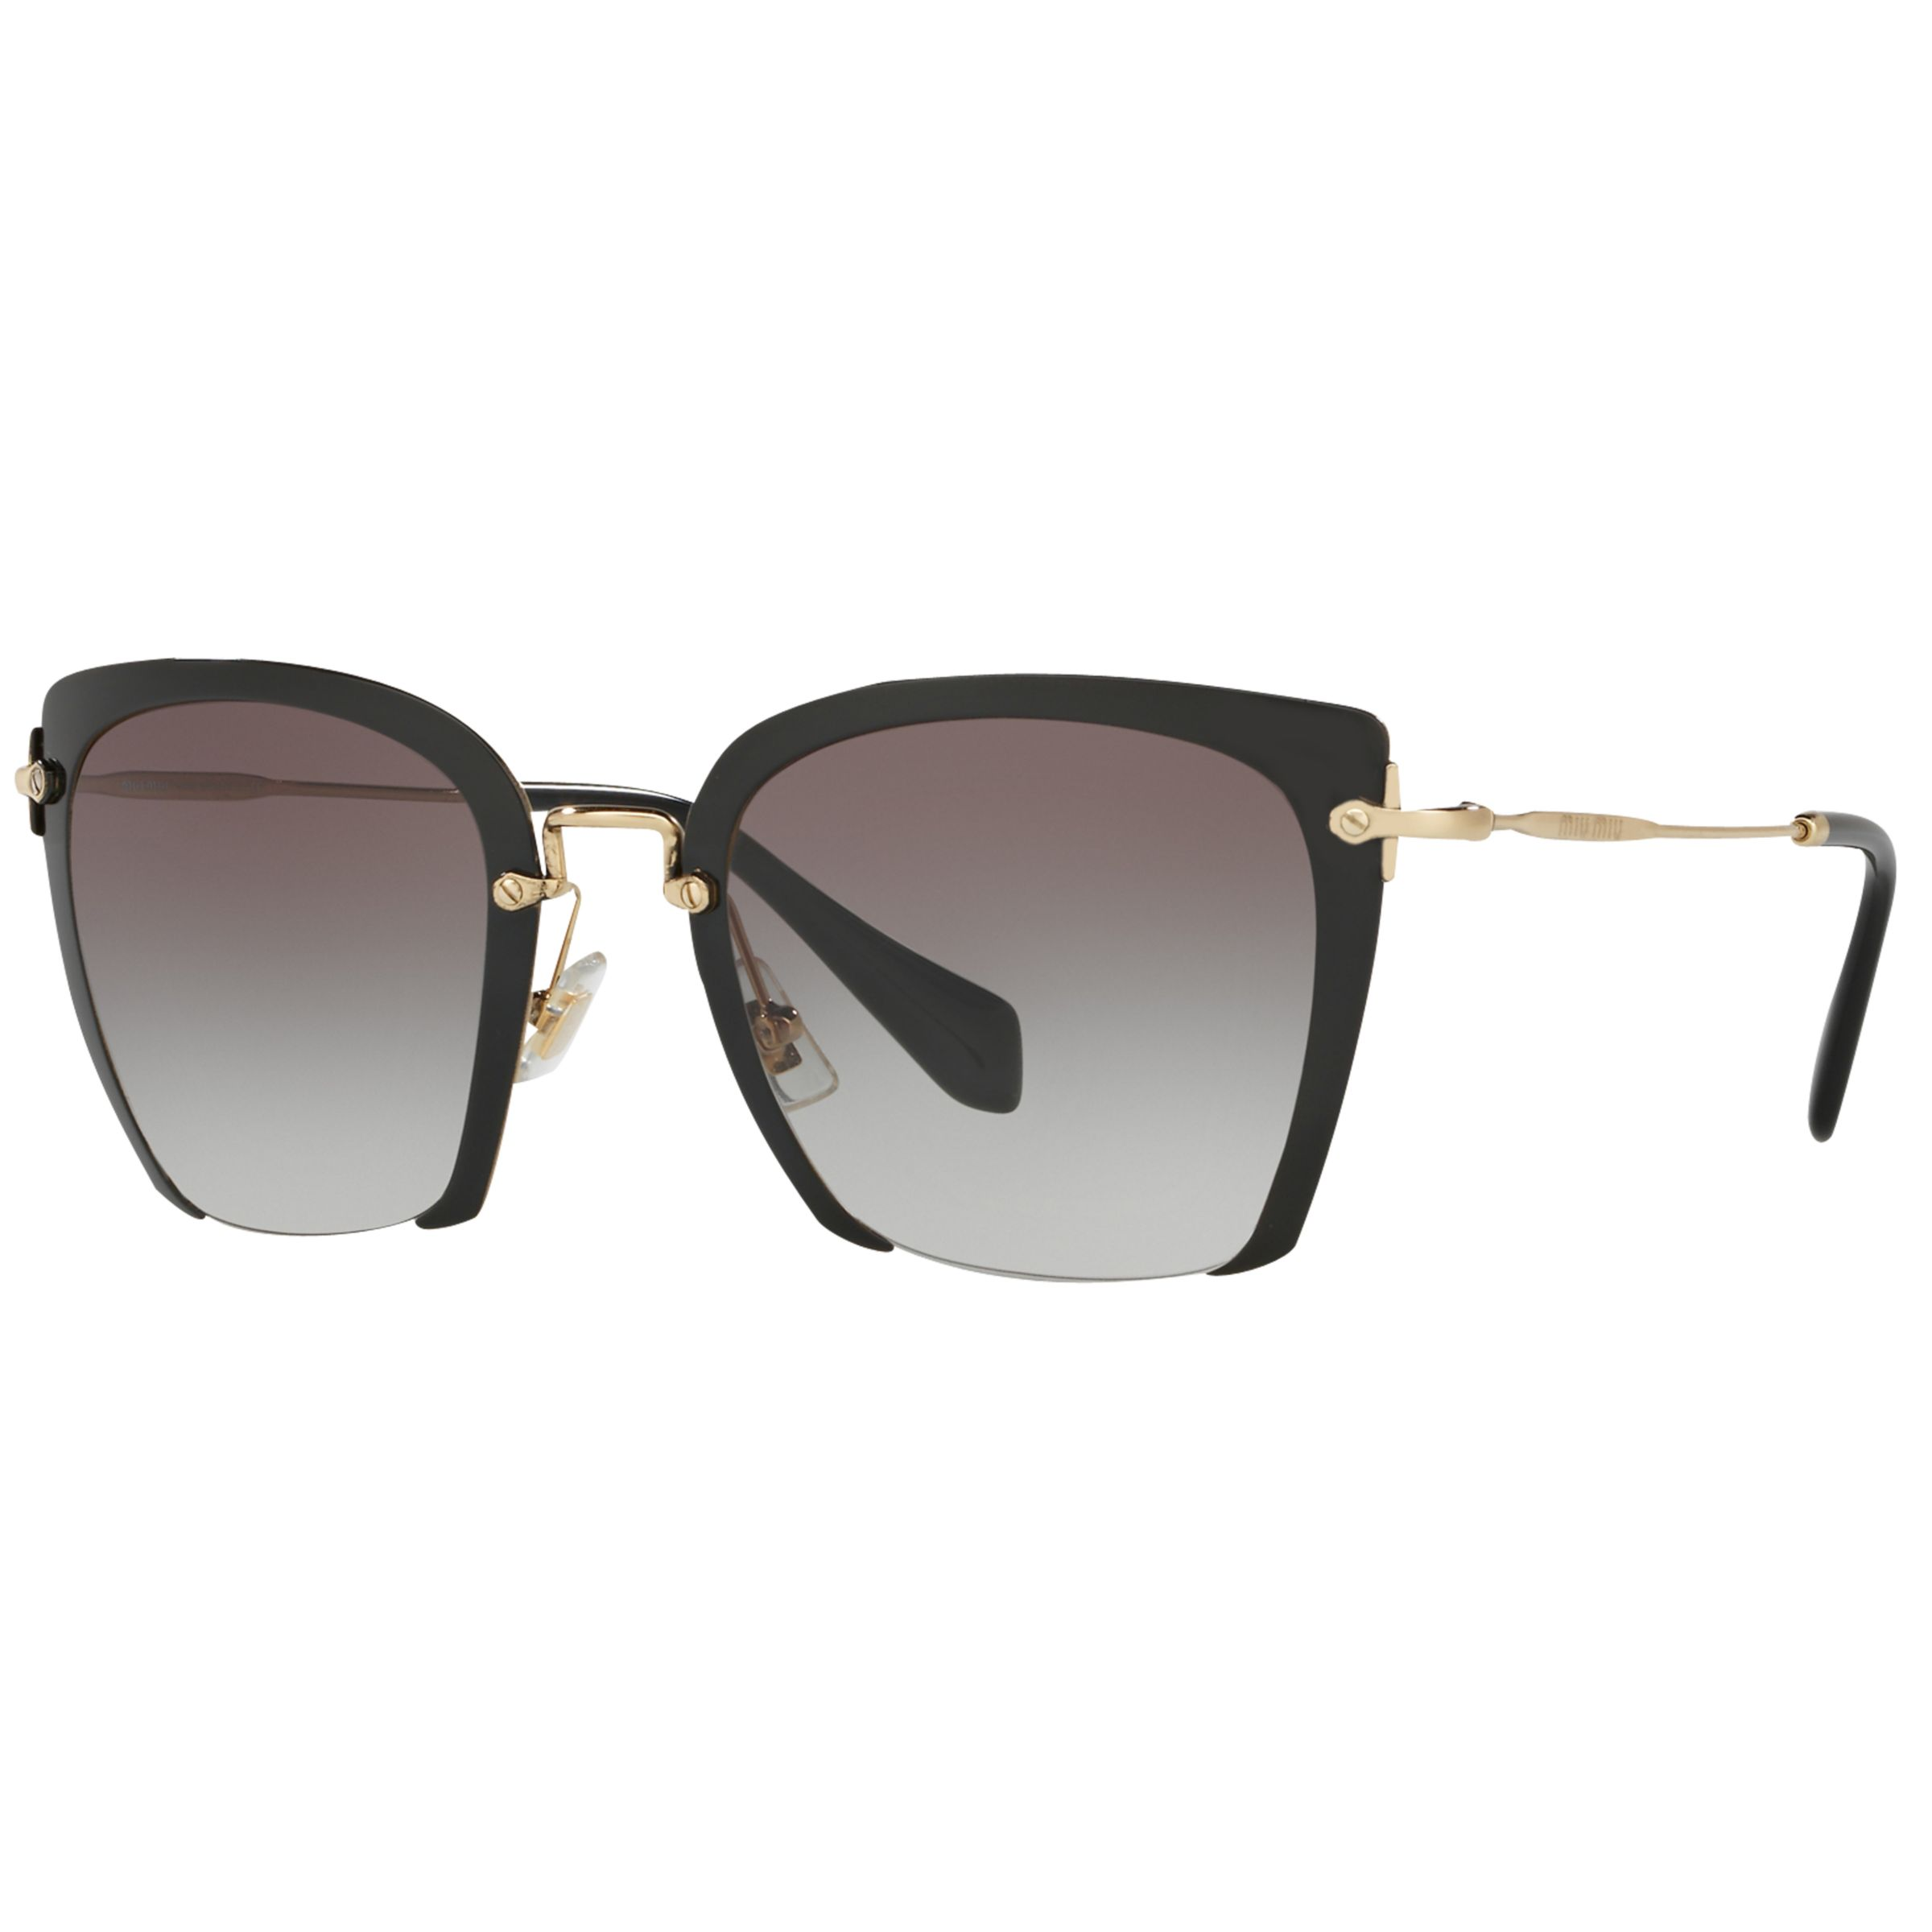 Miu Miu Miu Miu MU52RS Women's Square Sunglasses, Black/Grey Gradient